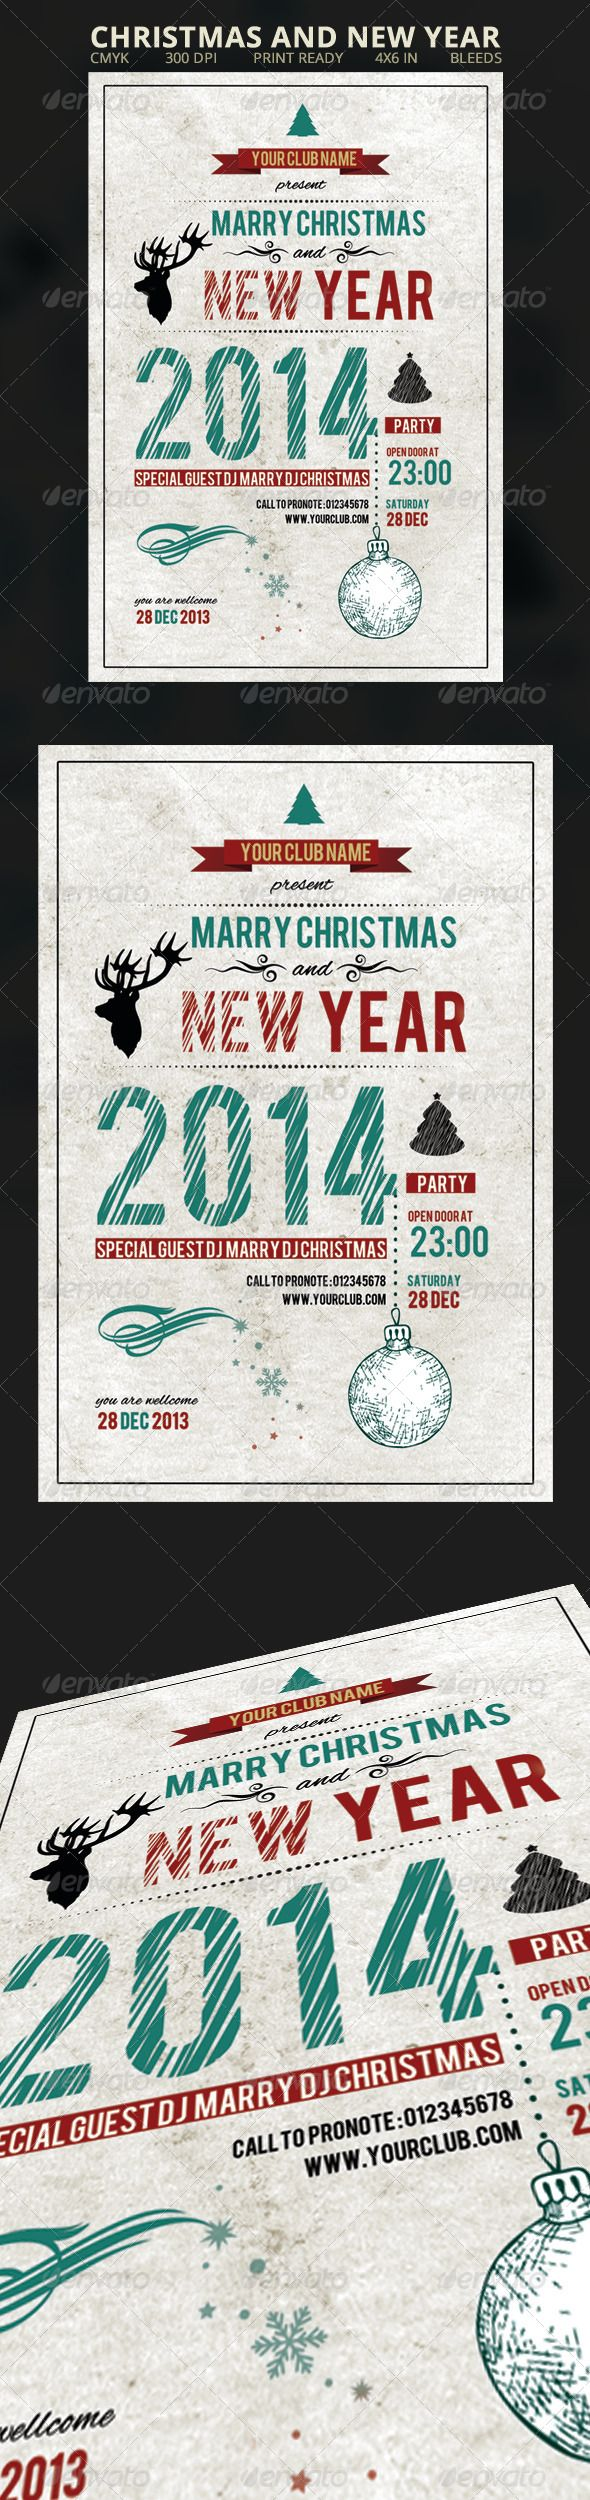 """Christmas and New Year Flyer #GraphicRiver Christmas and New Year Flyer Fully layered 1 PSD Easy to costumise 4×6""""(.25"""" bleed) 300dpi Print ready CMYK Fonts used are free Bebas: .dafont /bebas.font Alex-brush: .fontspace /typesetit/alex-brush Created: 5 December 13 Graphics Files Included: Photoshop PSD Layered: Yes Minimum Adobe CS Version: CS Print Dimensions: 4x6 Tags Christmas Dinner #bash #celebration #christmas #christmas party #cristmas flyer #design #dinner #elegant #flyer #gig…"""